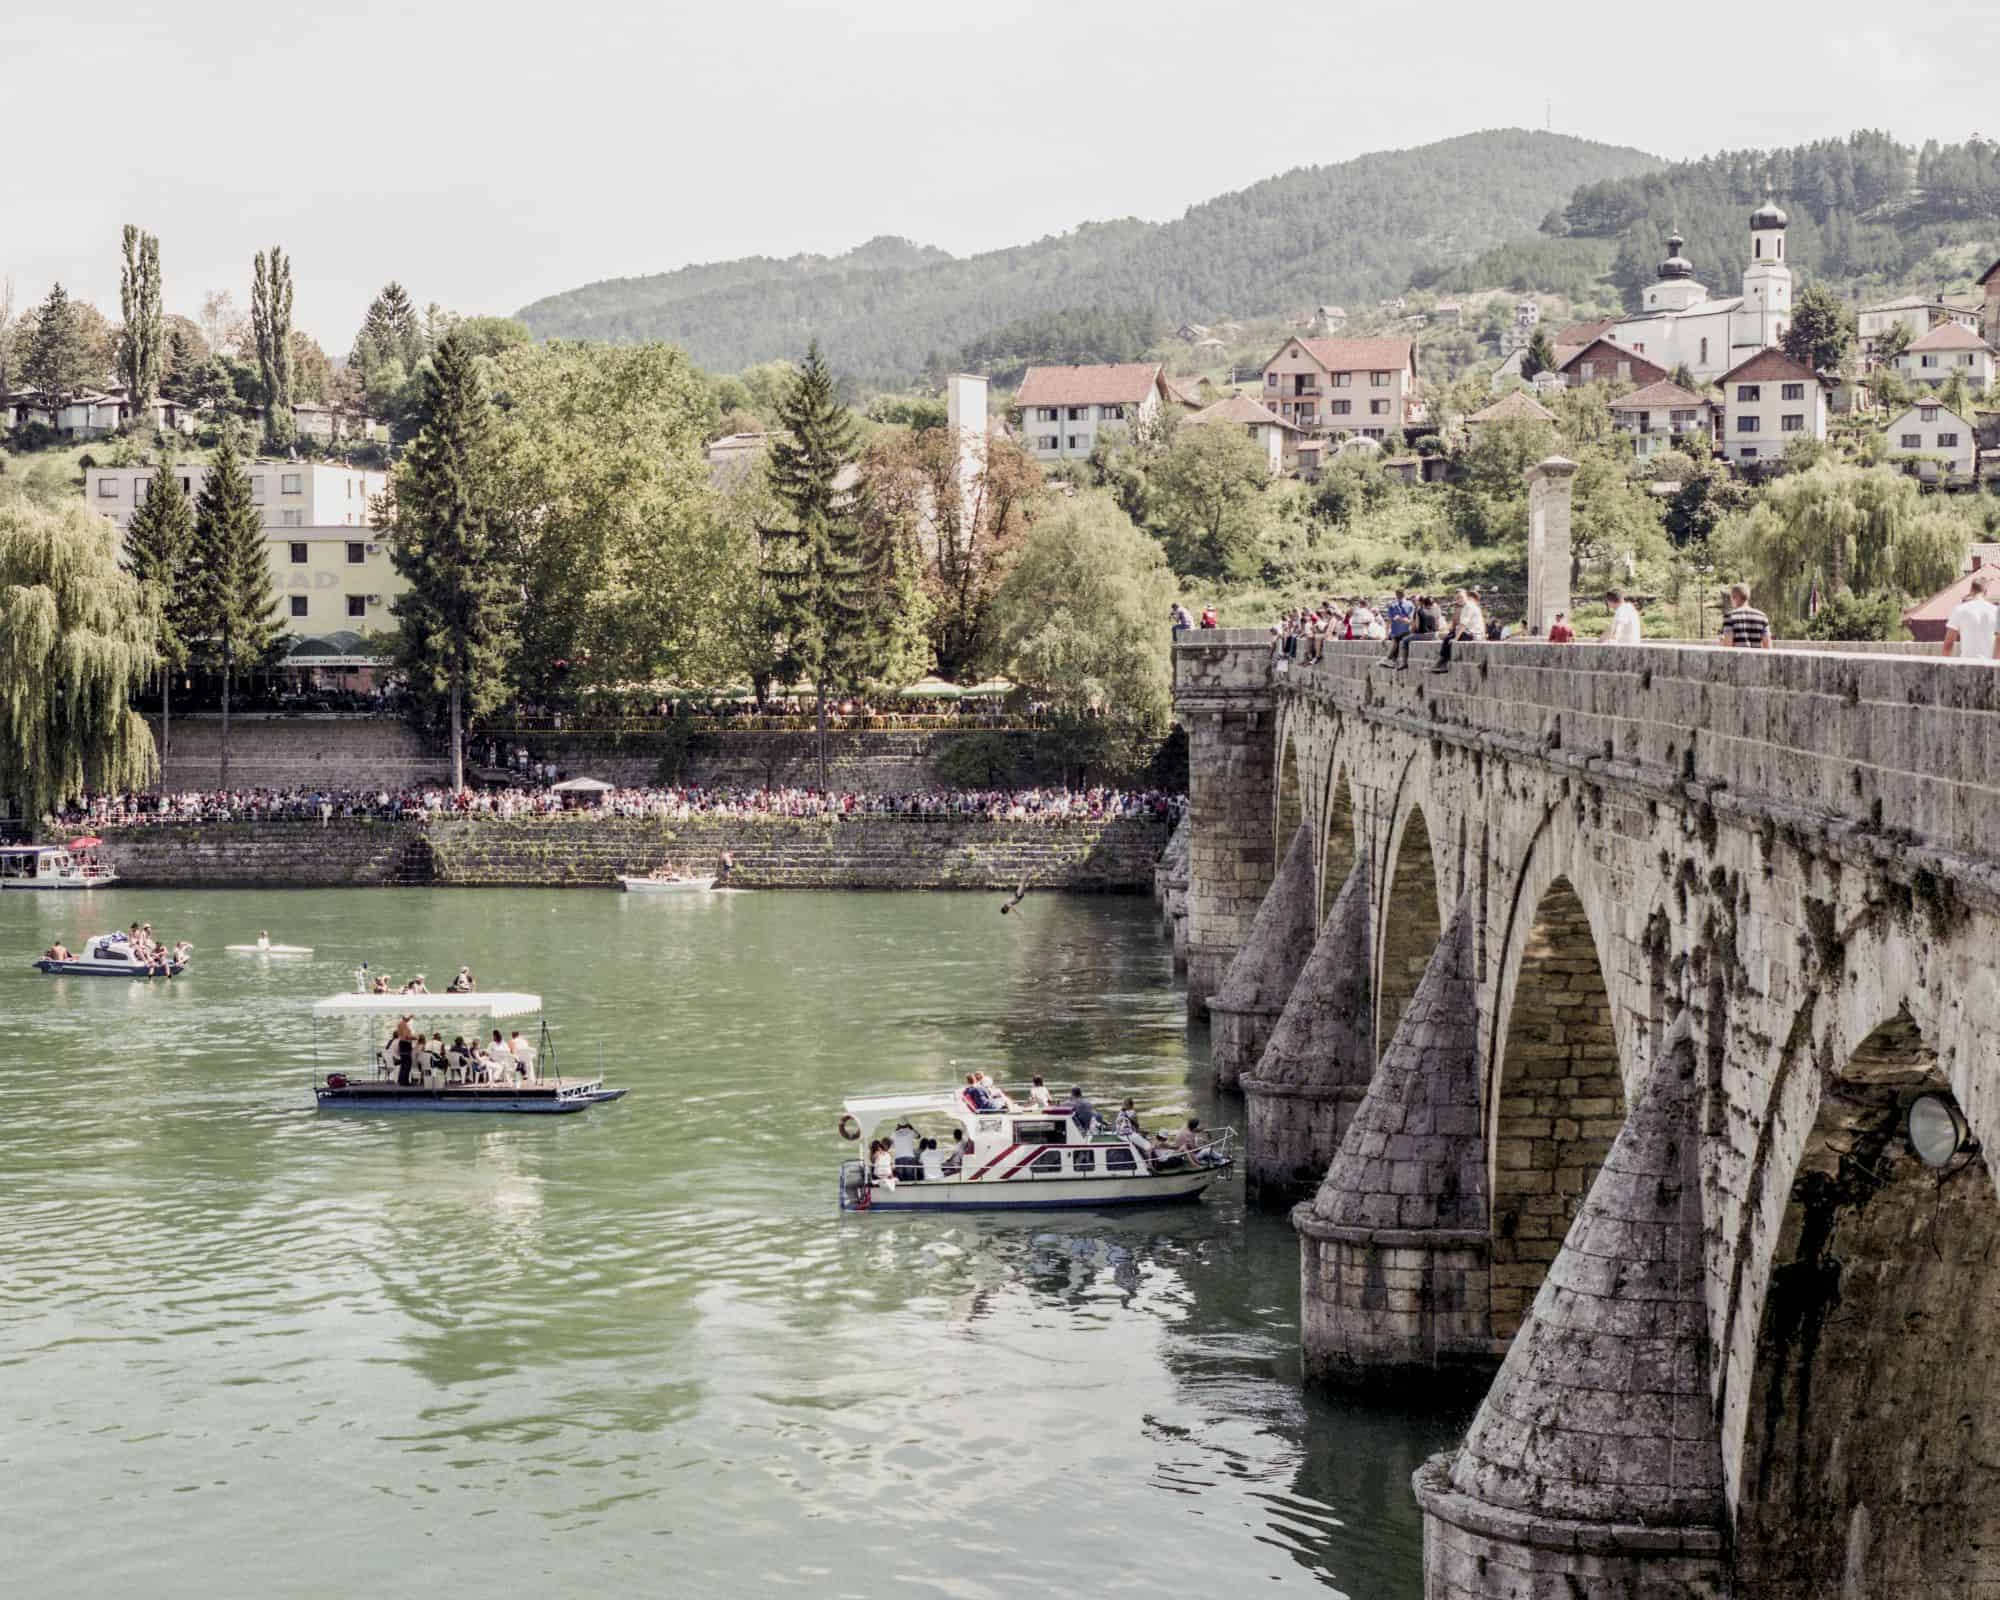 Paweł Starzec, The Bridge on Drina, Visegrad, former execution ground. Water jumping contest, from the series: Makeshift, courtesy of the artist